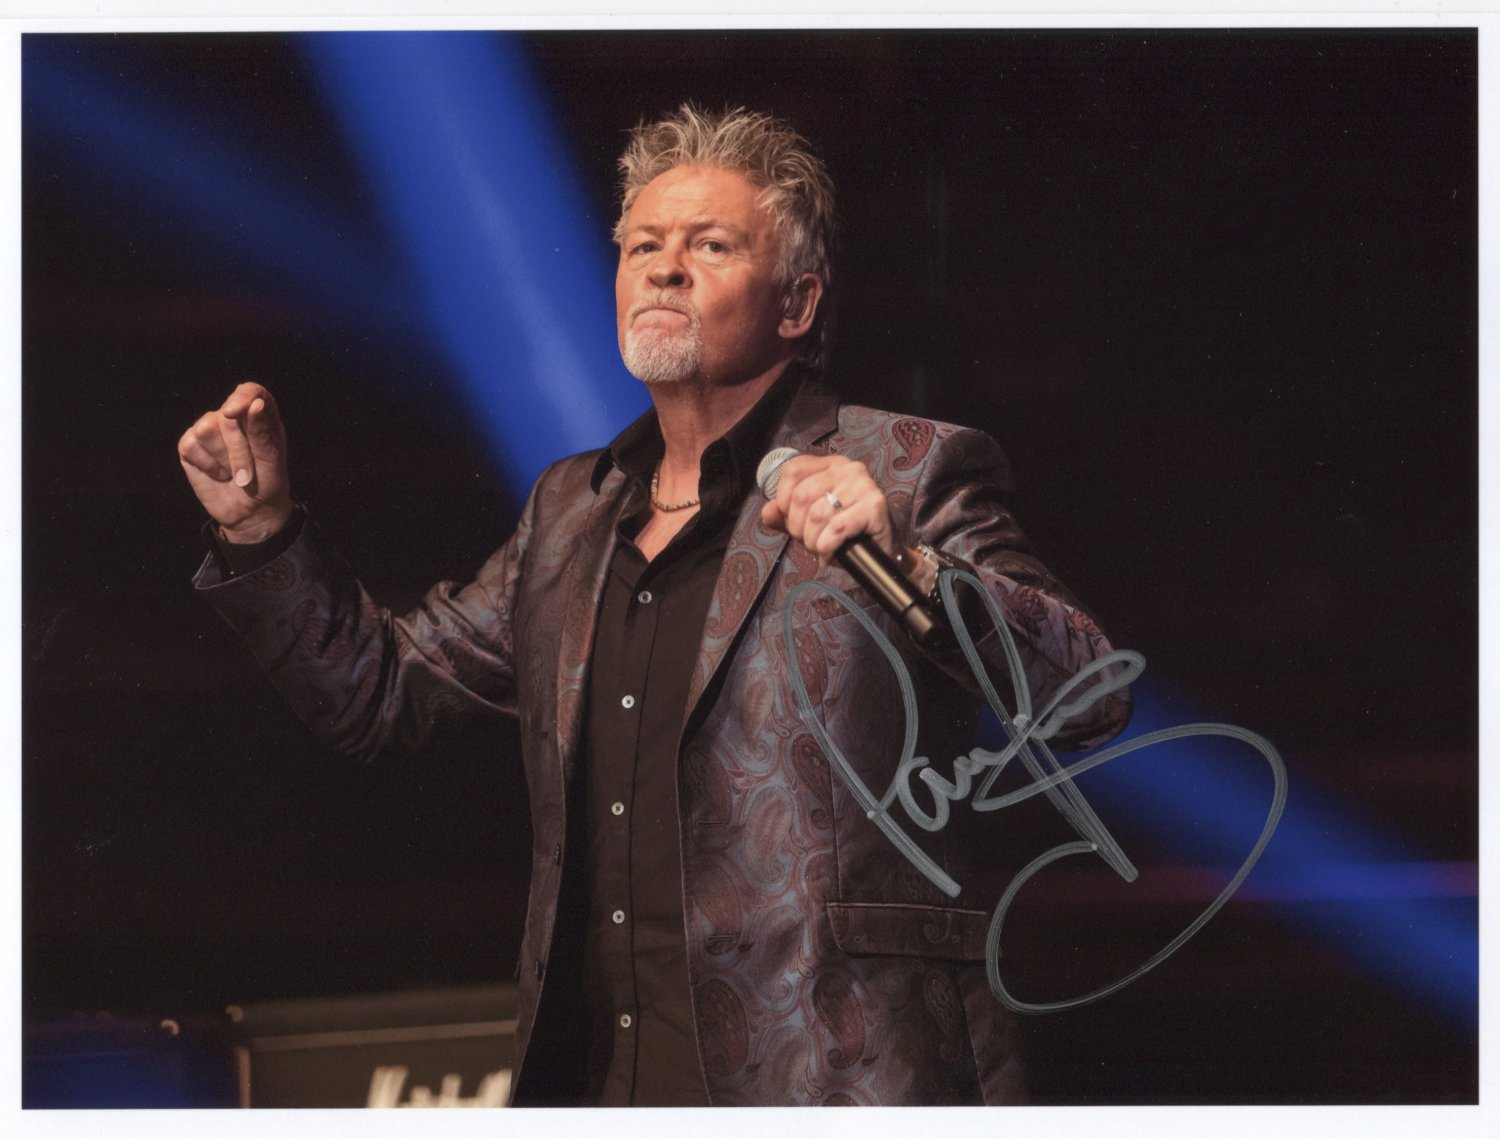 """Paul Young (Singer) SIGNED 8"""" x 10"""" Photo + Certificate Of Authentication  100% Genuine Photo Proof"""